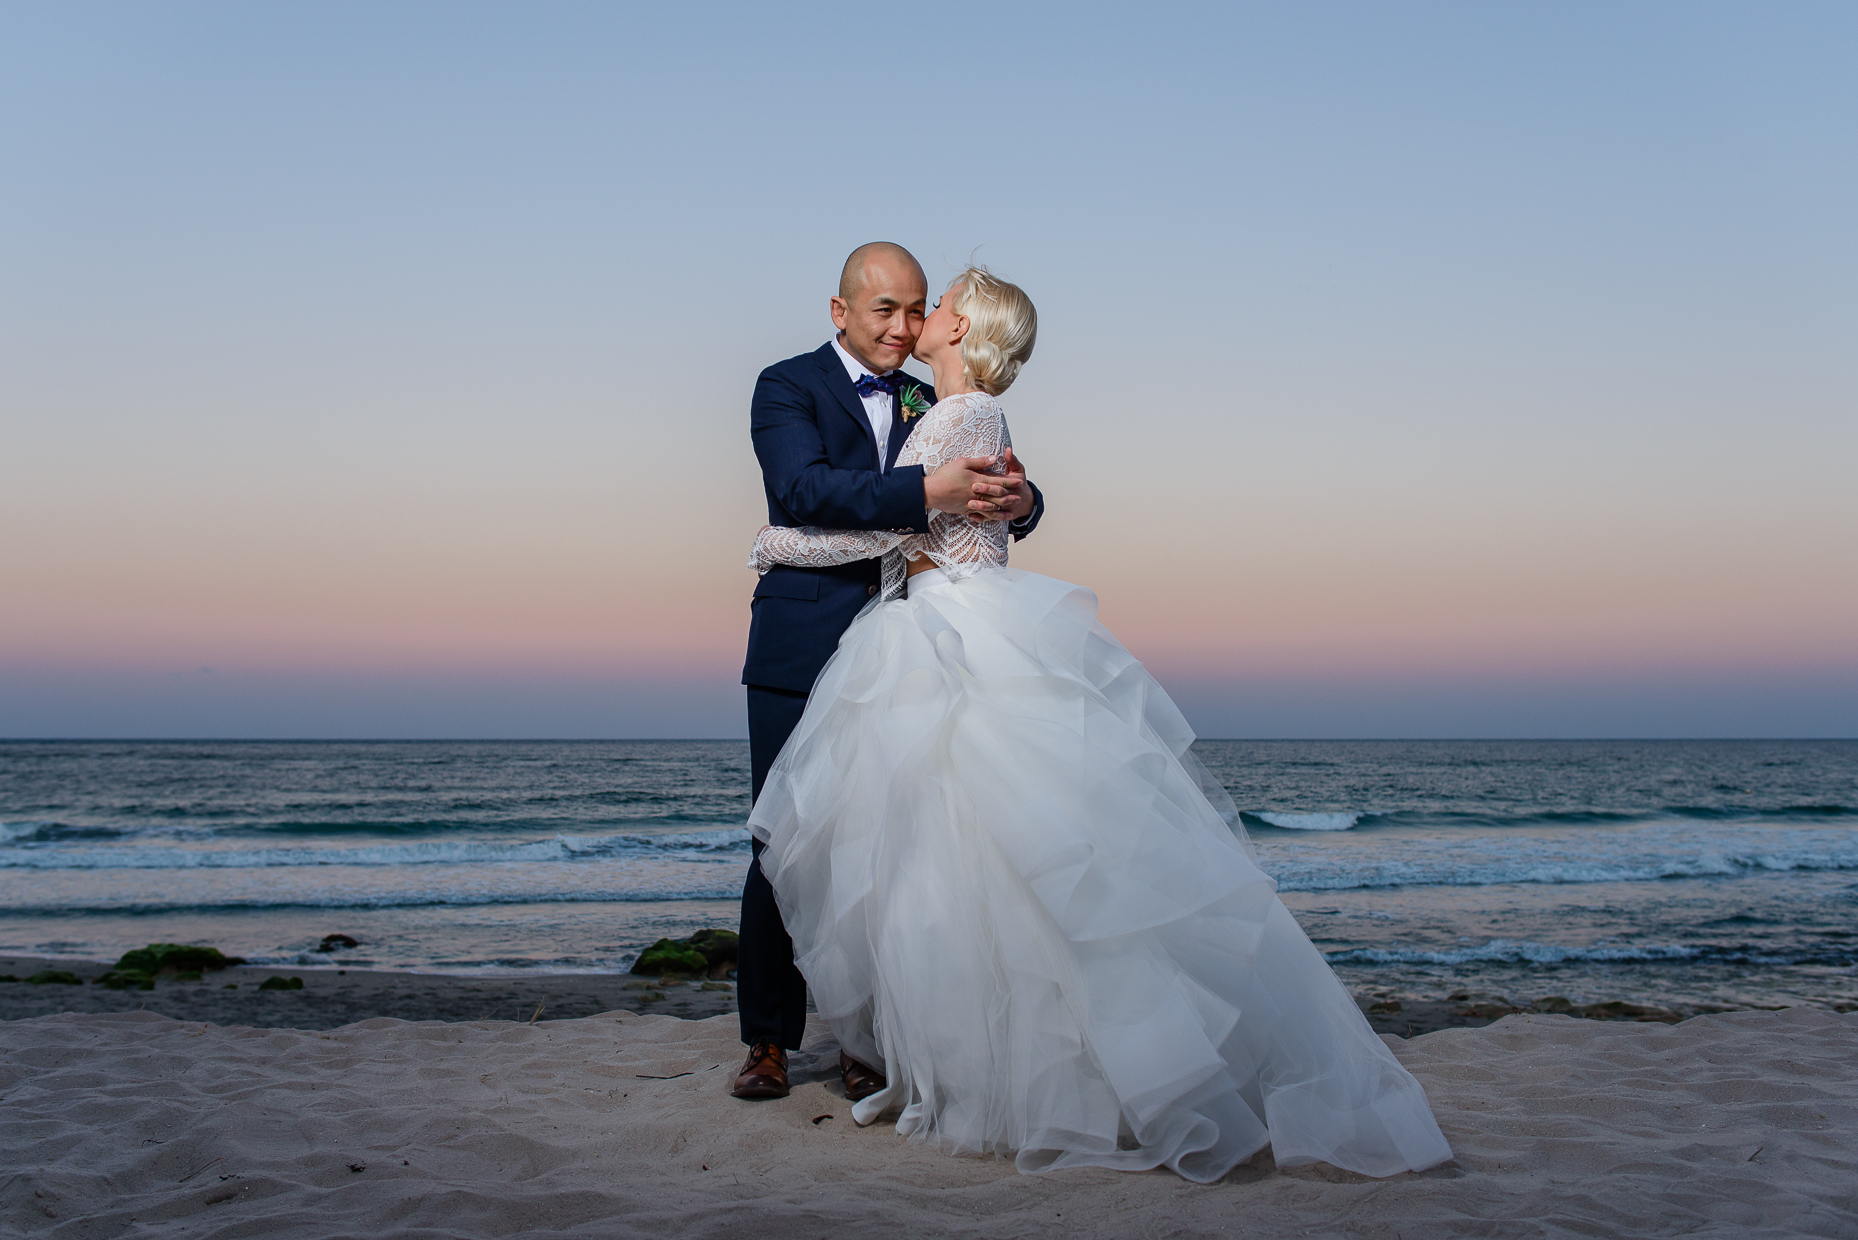 sunset-beach-wedding-portrait-austin-photographer-destination